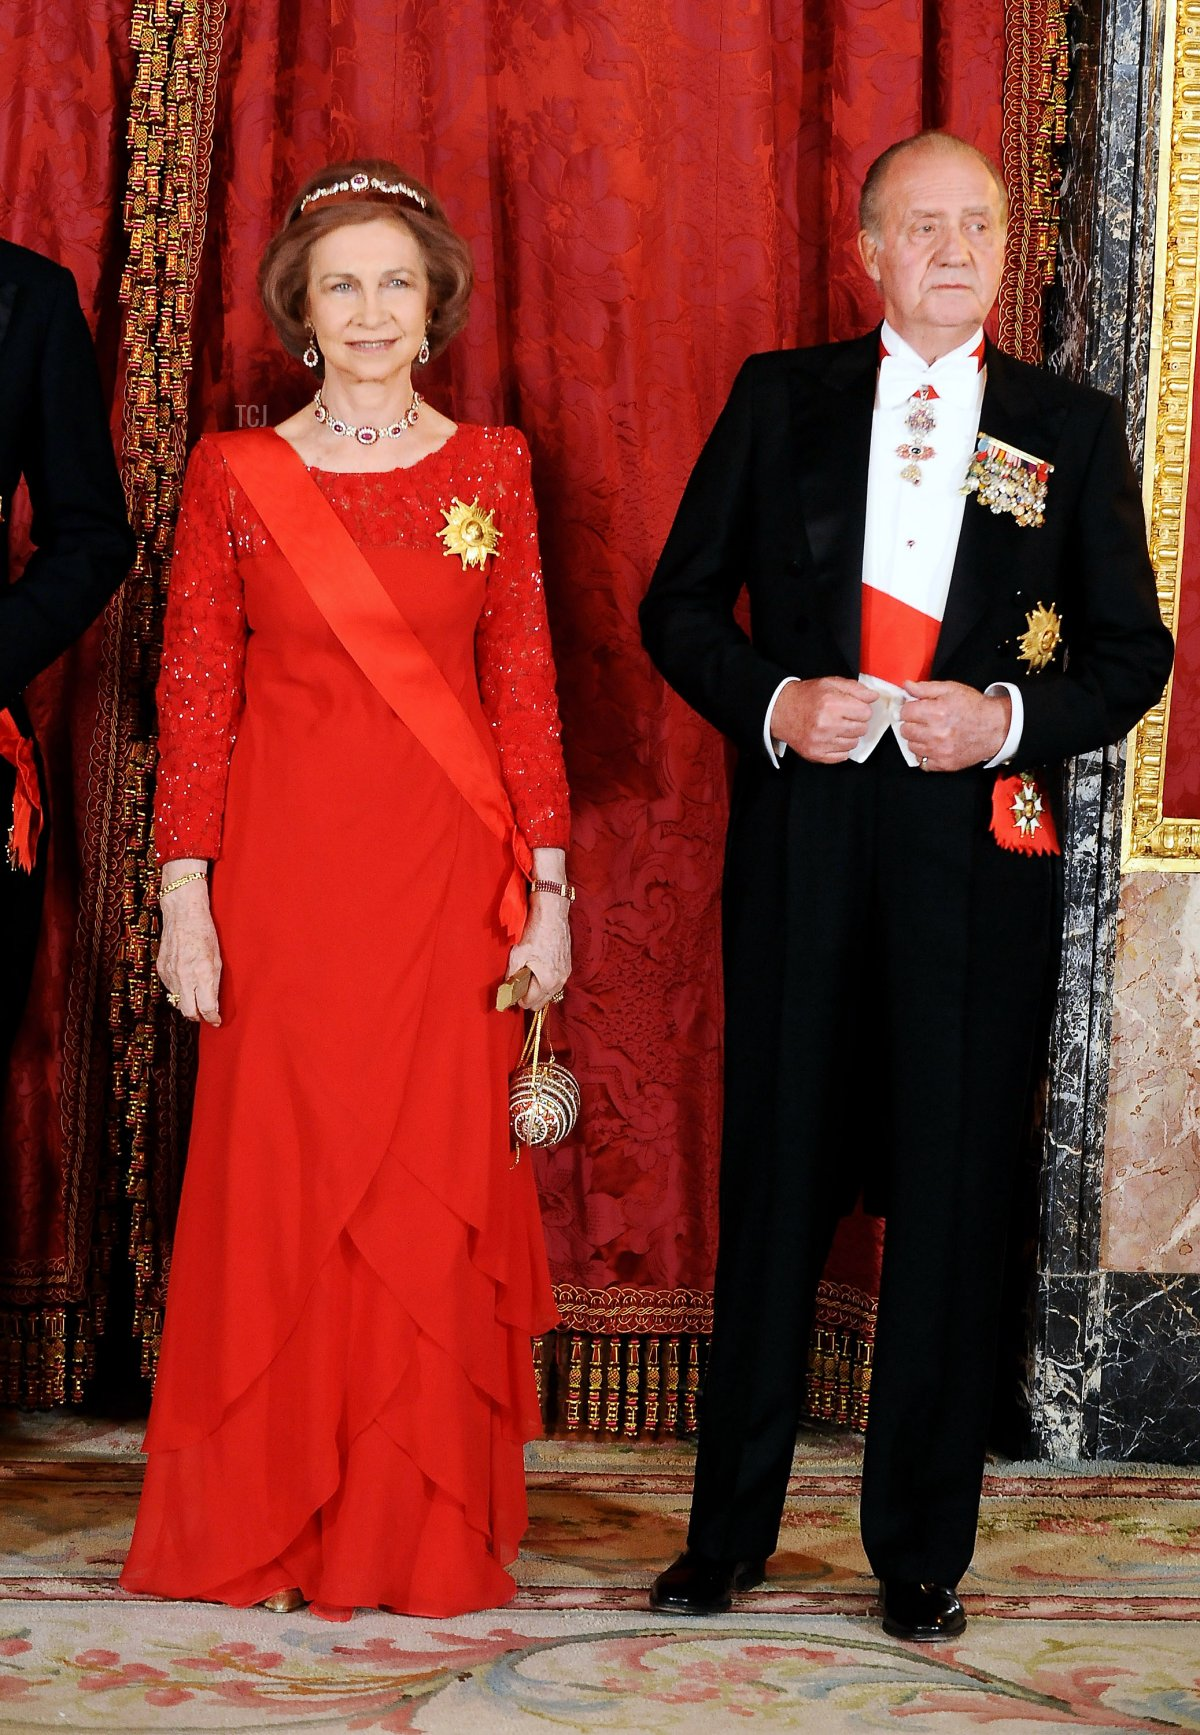 Queen Sofia of Spain and King Juan Carlos I of Spain attend a Gala Dinner honouring French President Nicolas Sarkozy at the Royal Palace on April 27, 2009 in Madrid, Spain